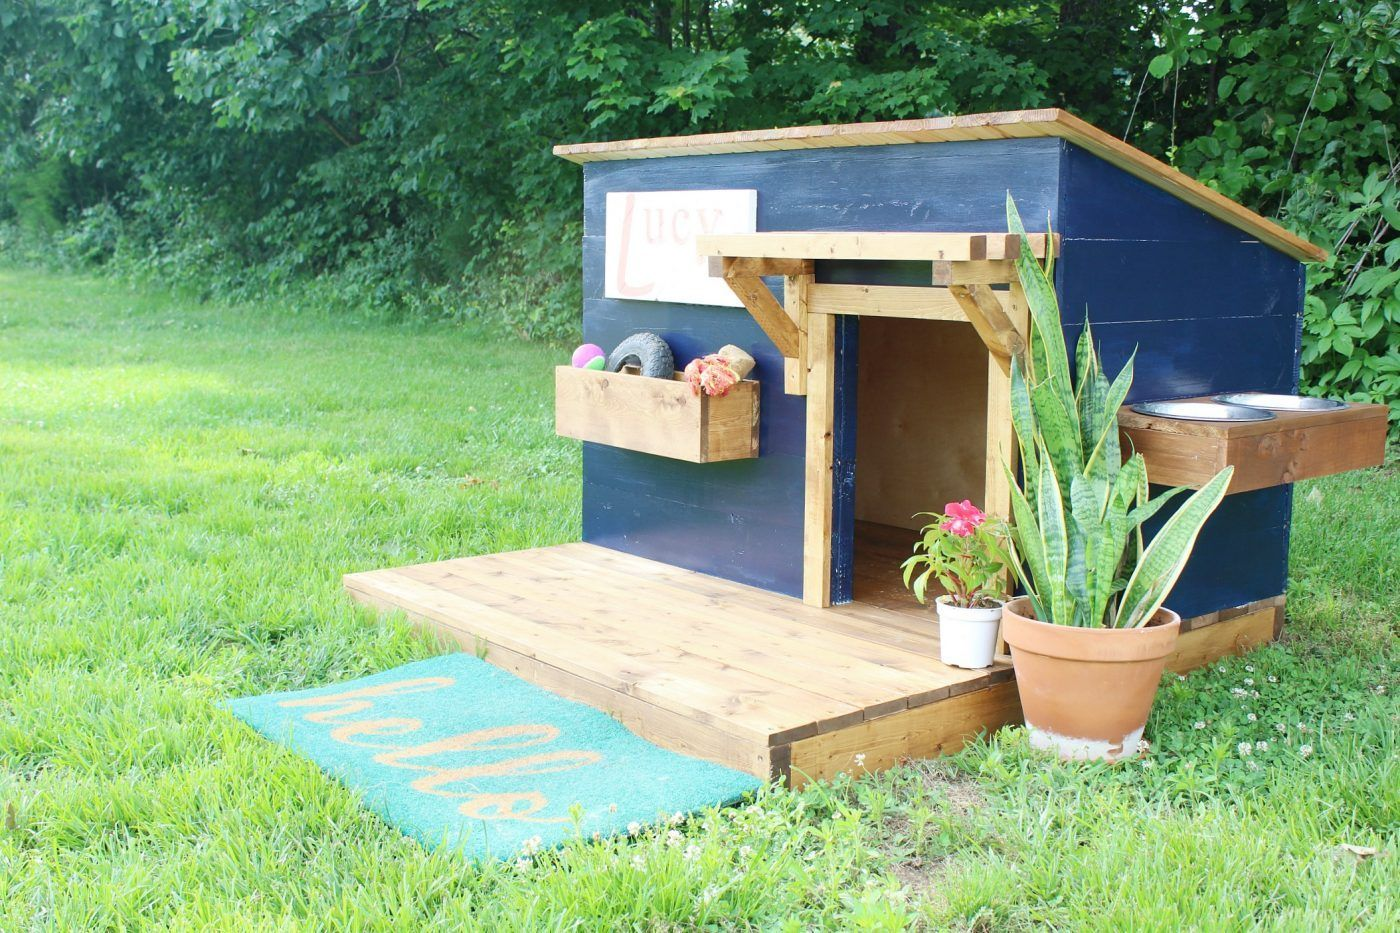 diy doghouse with deck, toy box, and food bowl | dogs + dog